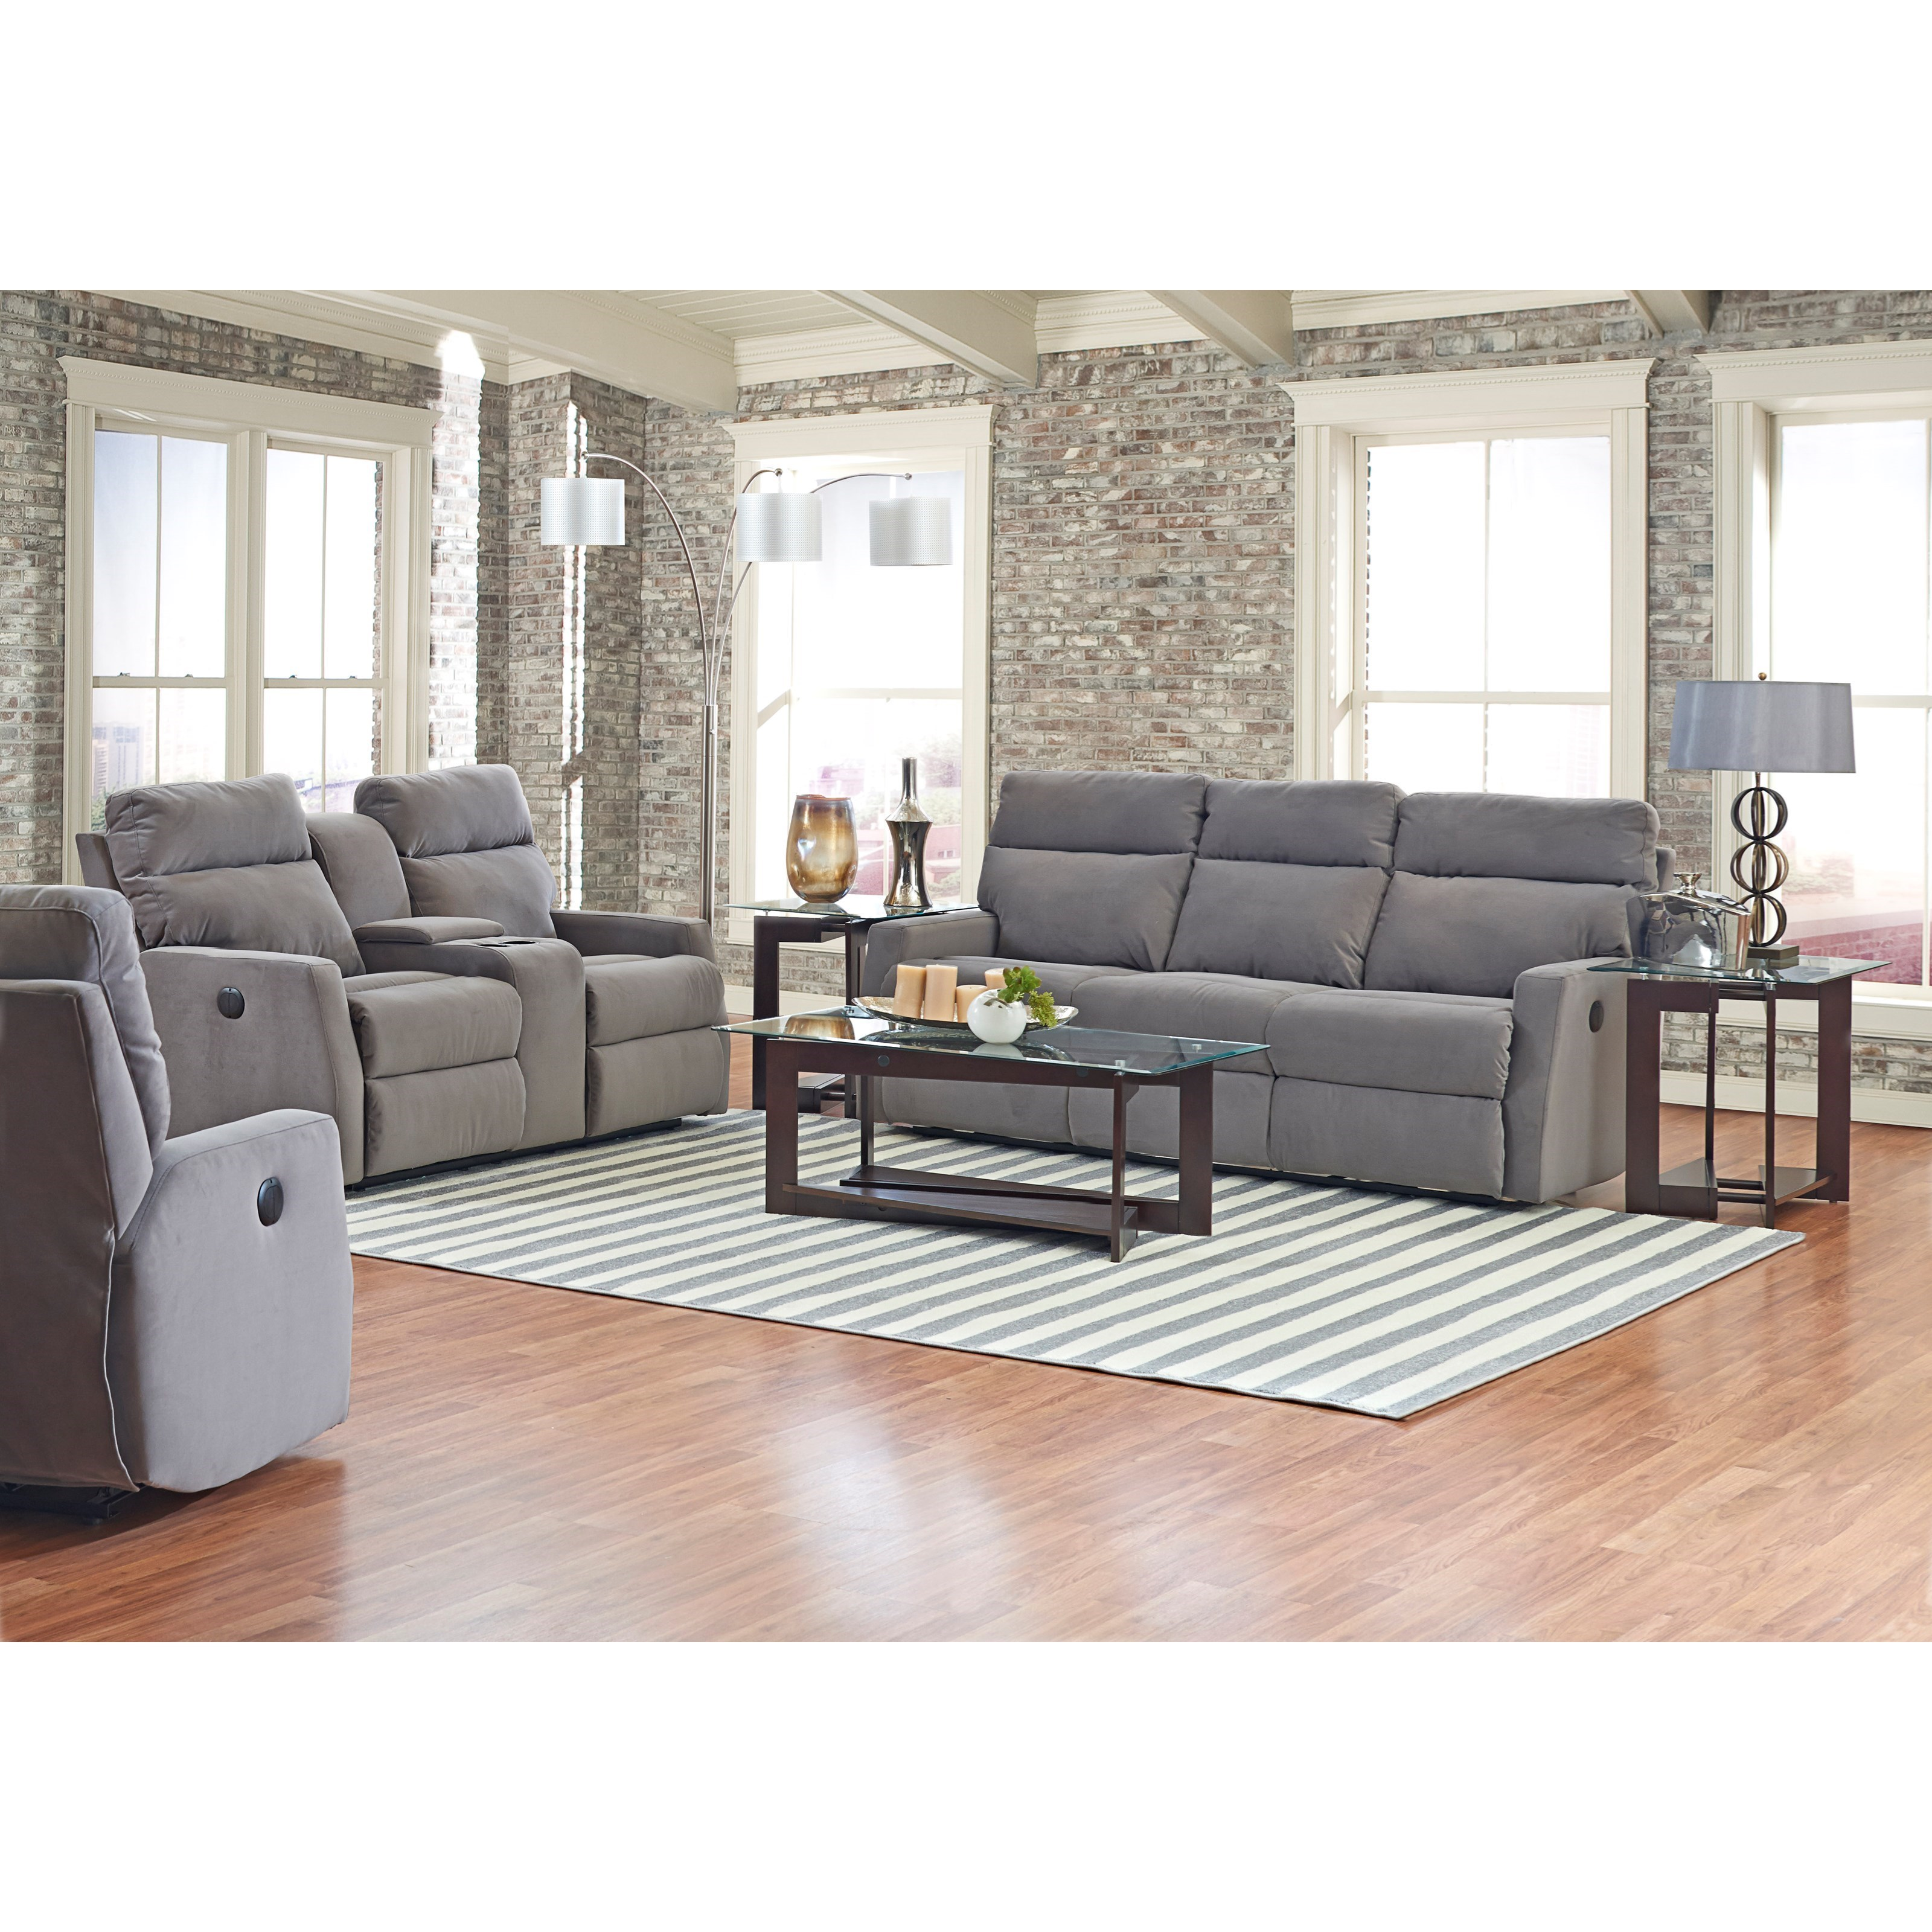 Daphne Reclining Living Room Group by Klaussner at Catalog Outlet